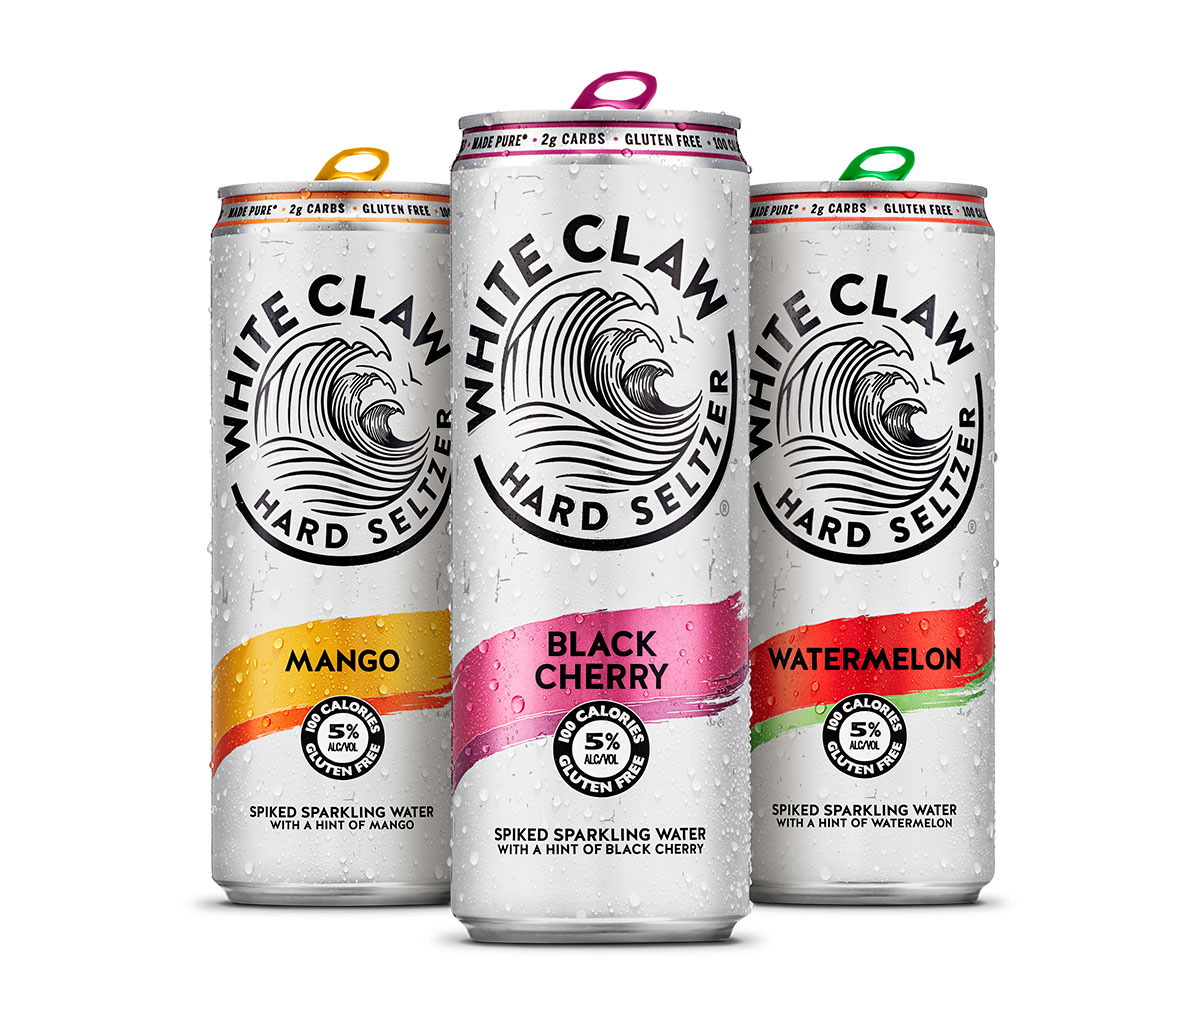 3 White Claw drinks.